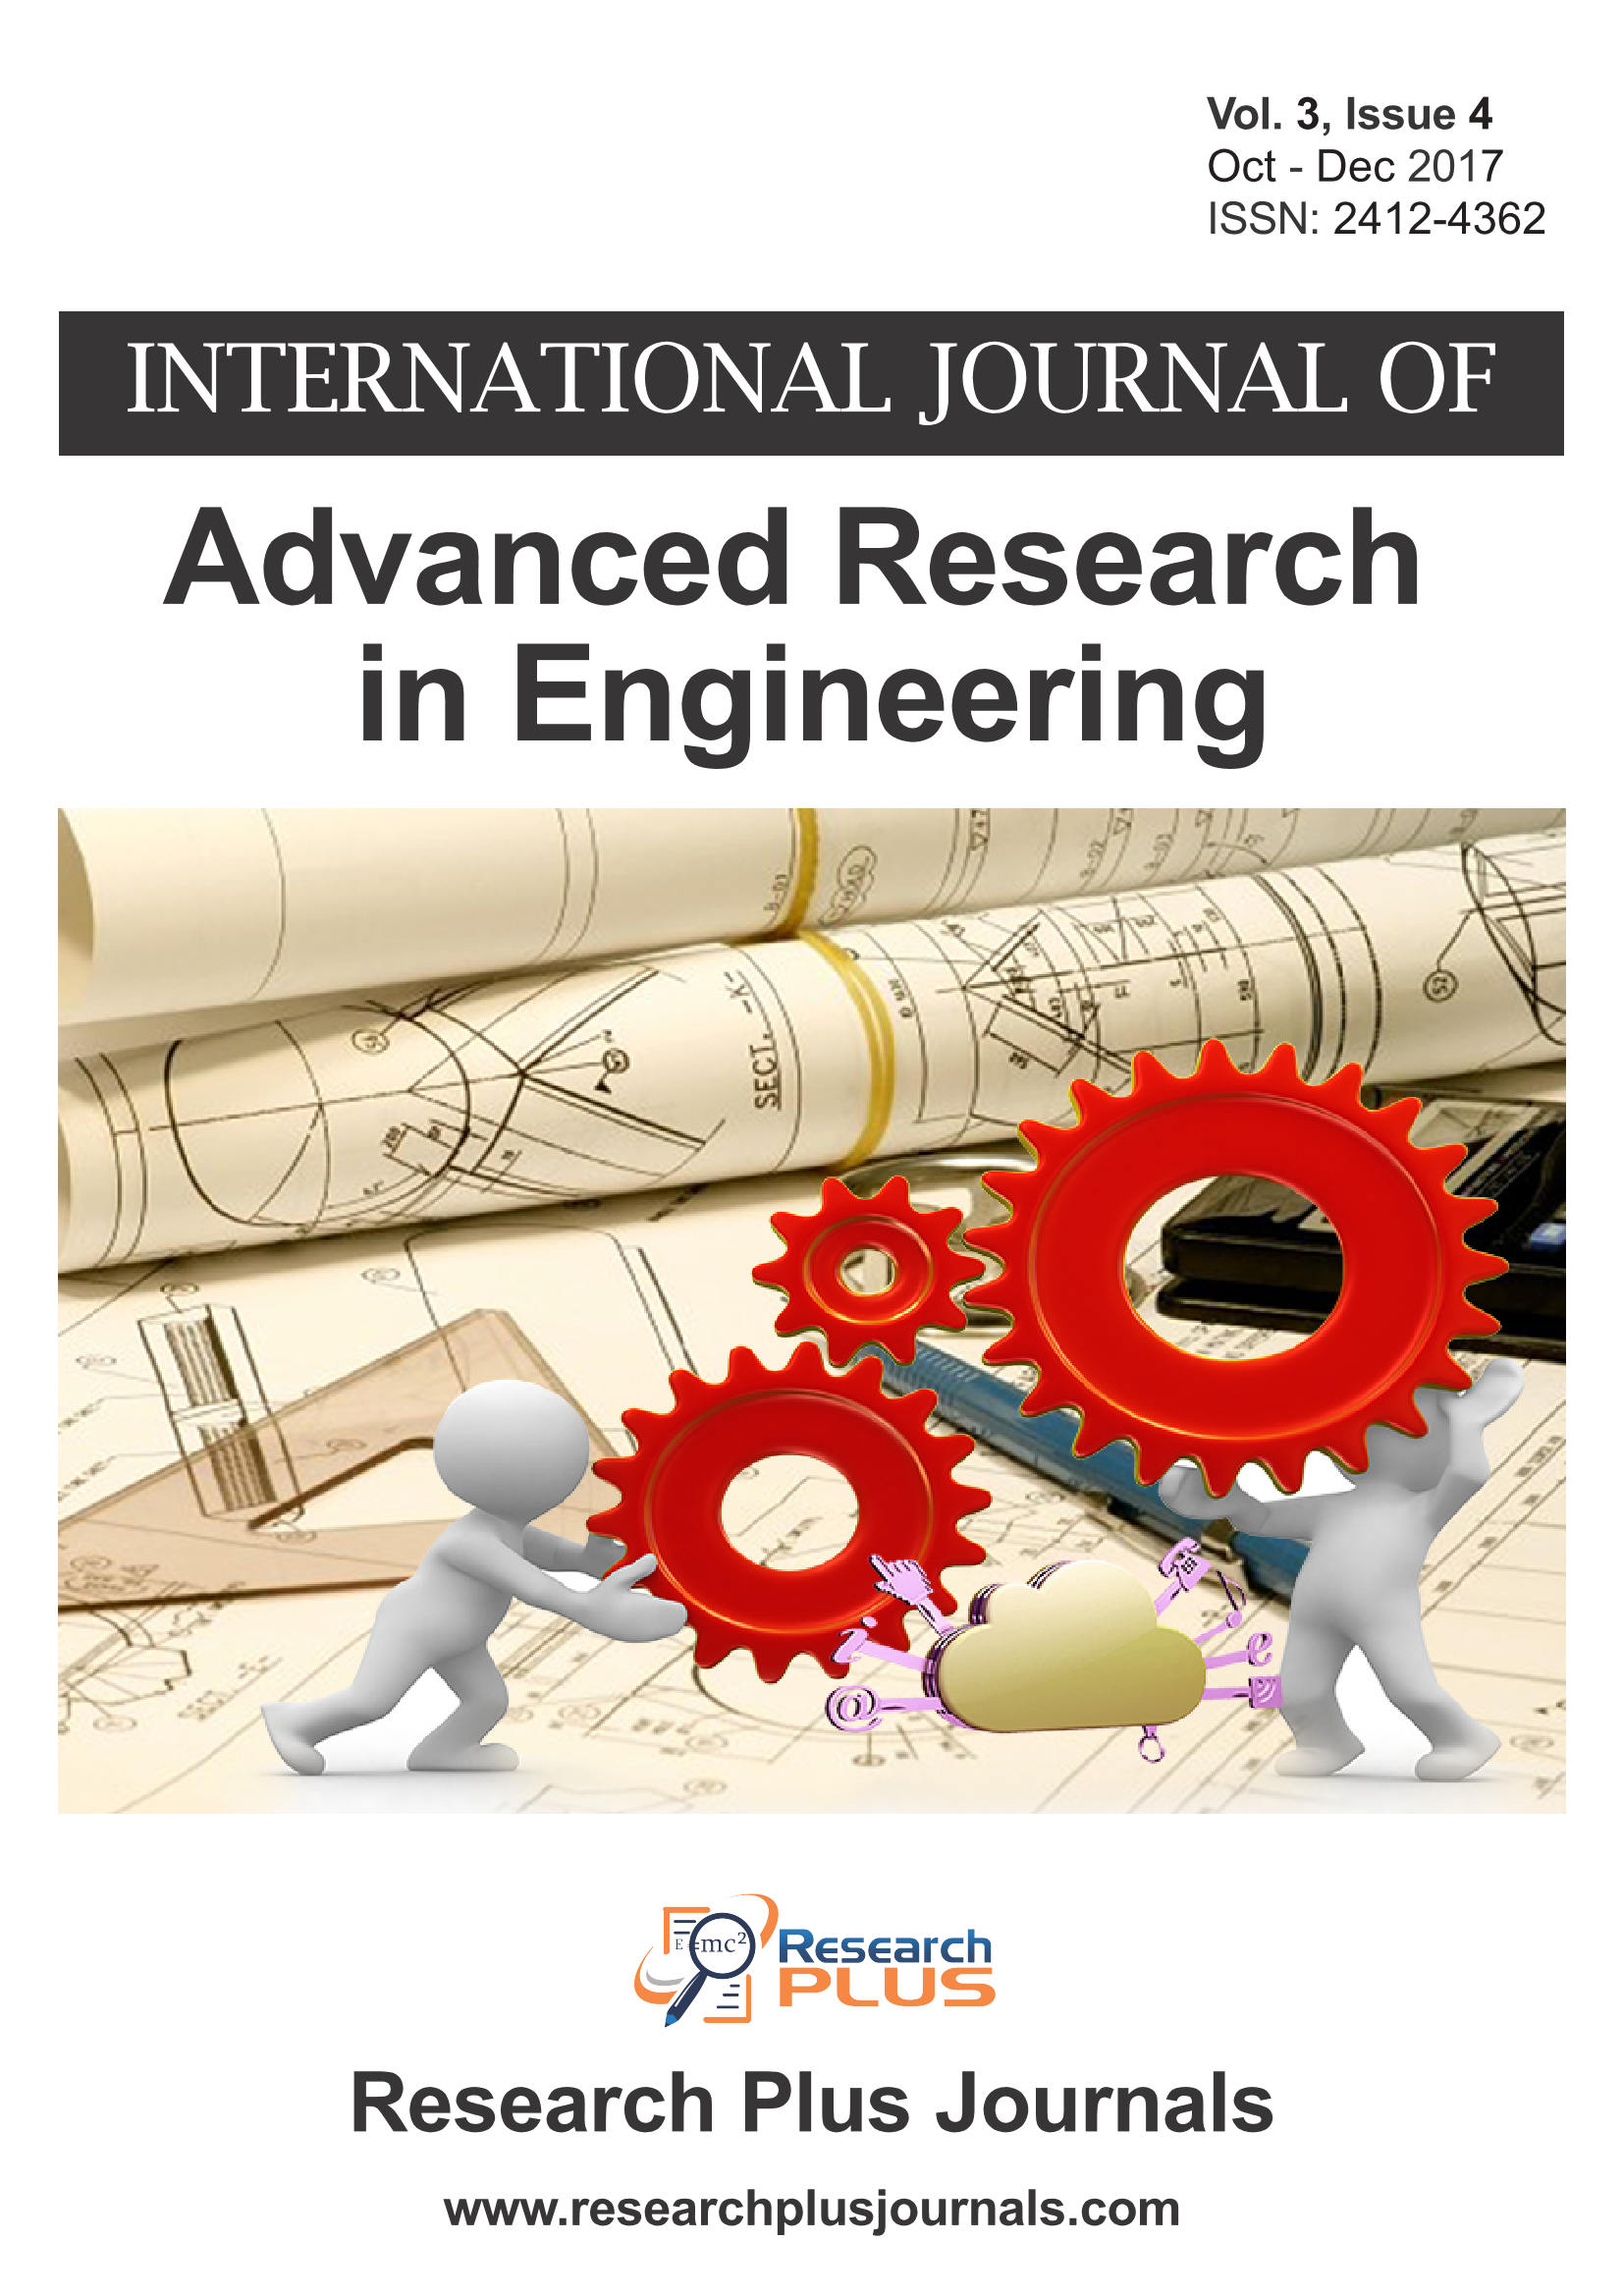 Volume 3, Issue 4, International Journal of Advanced Research in Engineering (IJARE)  (Online ISSN 2412-4362)